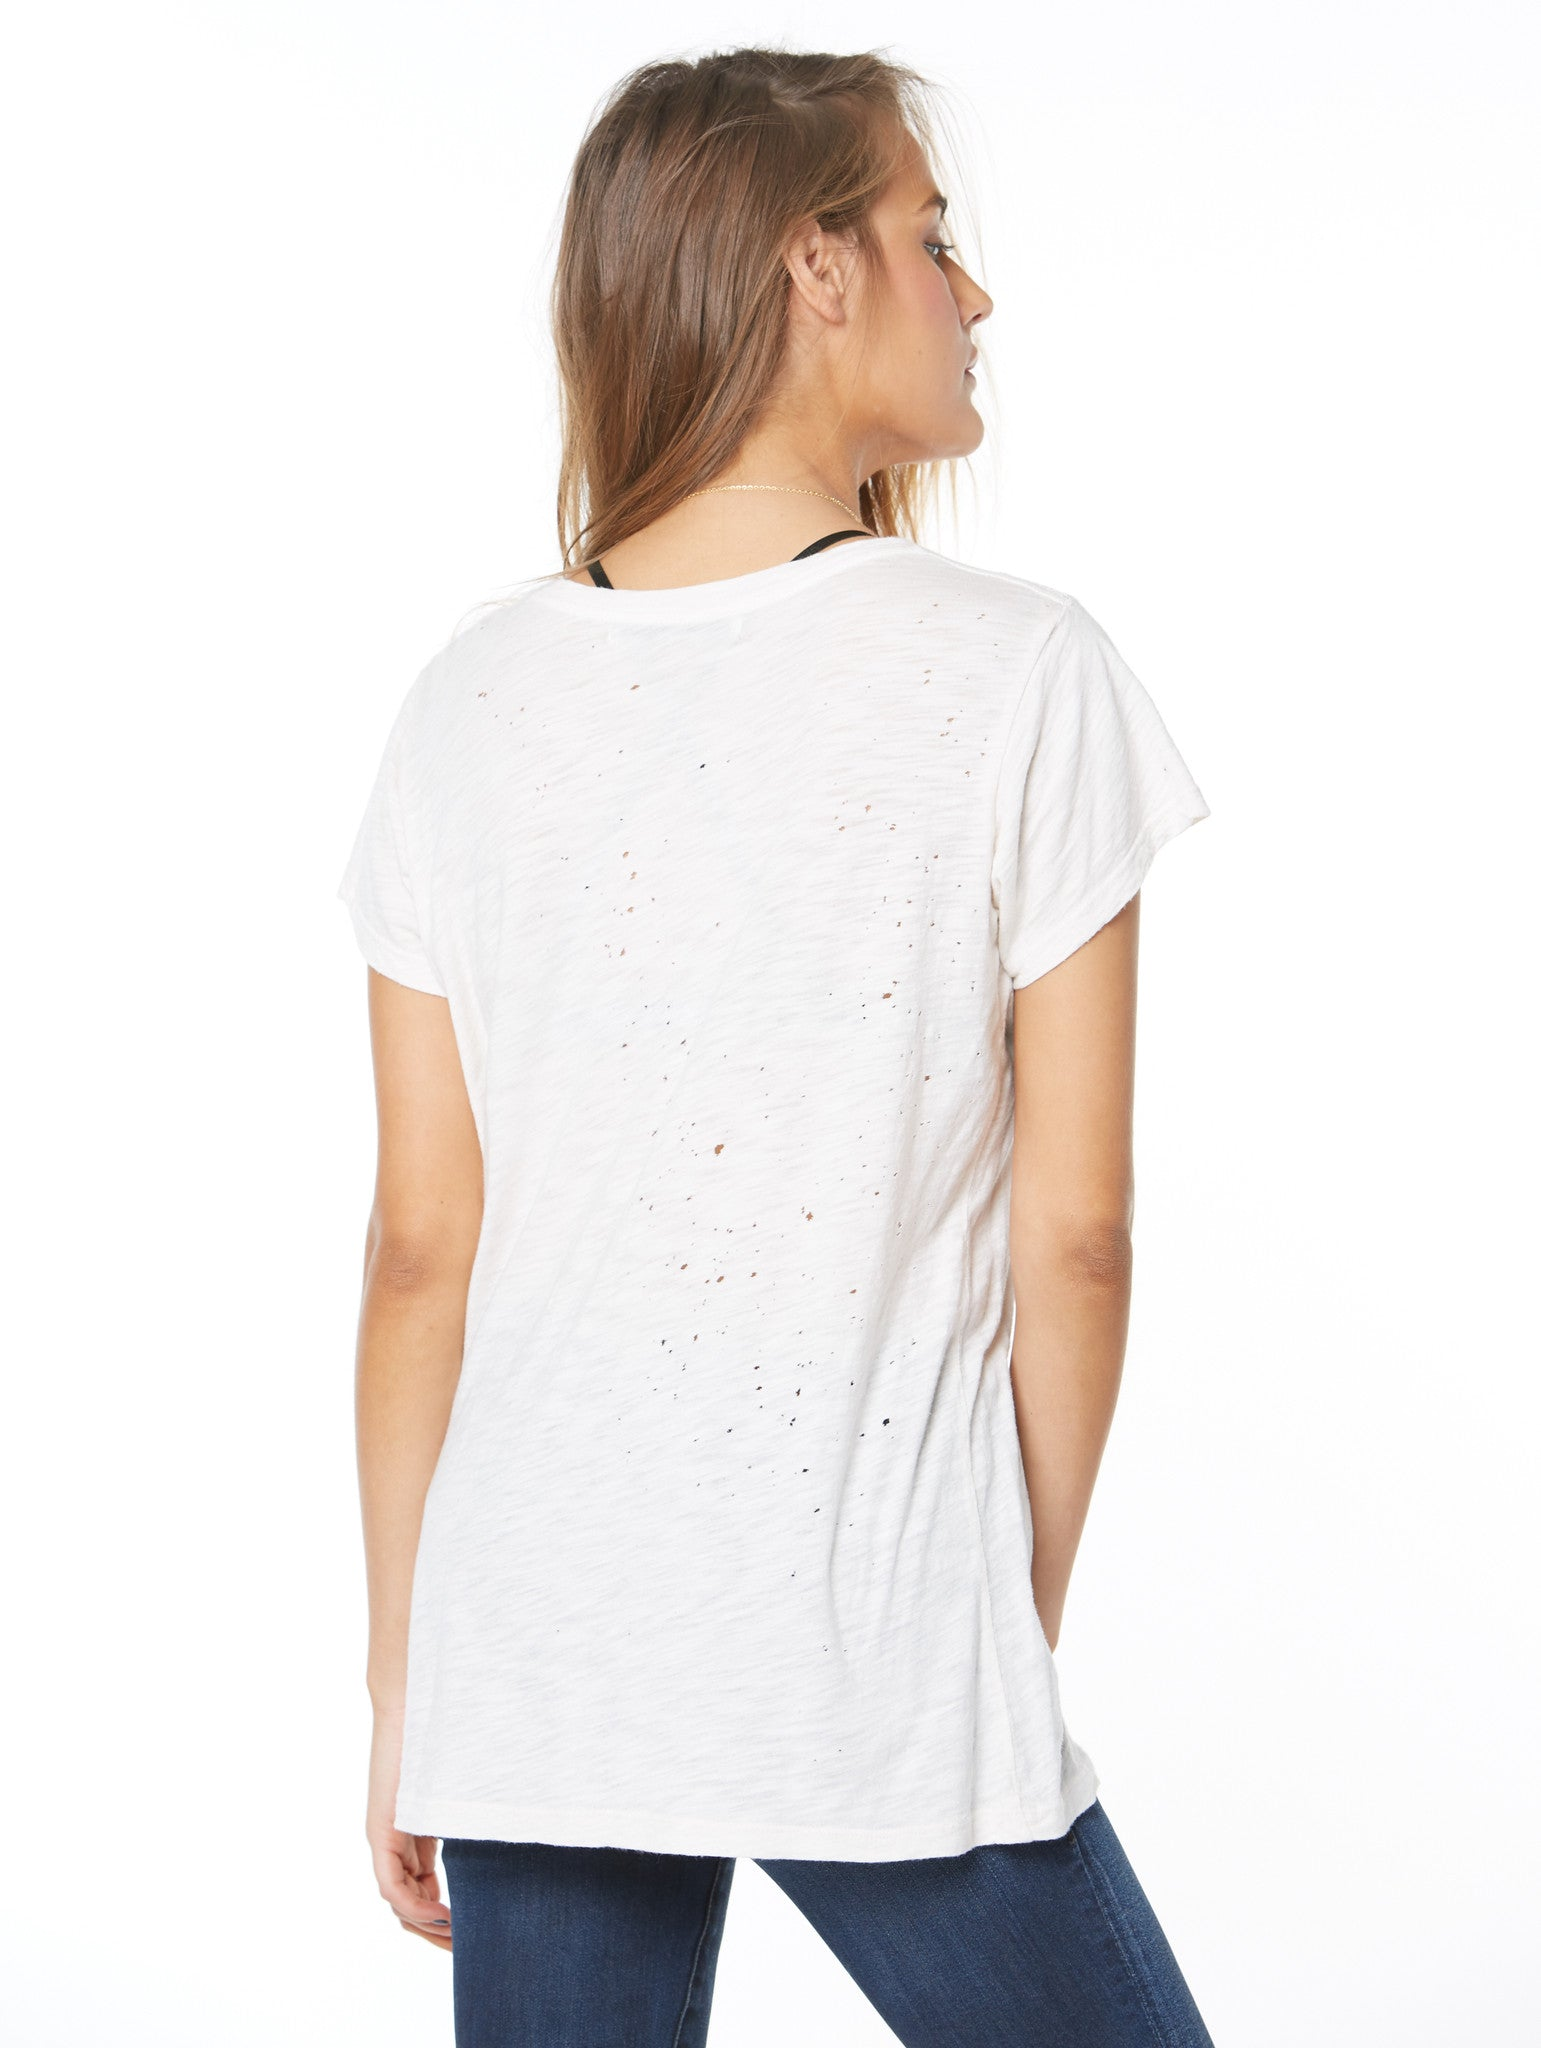 the destroyed scoop neck tee